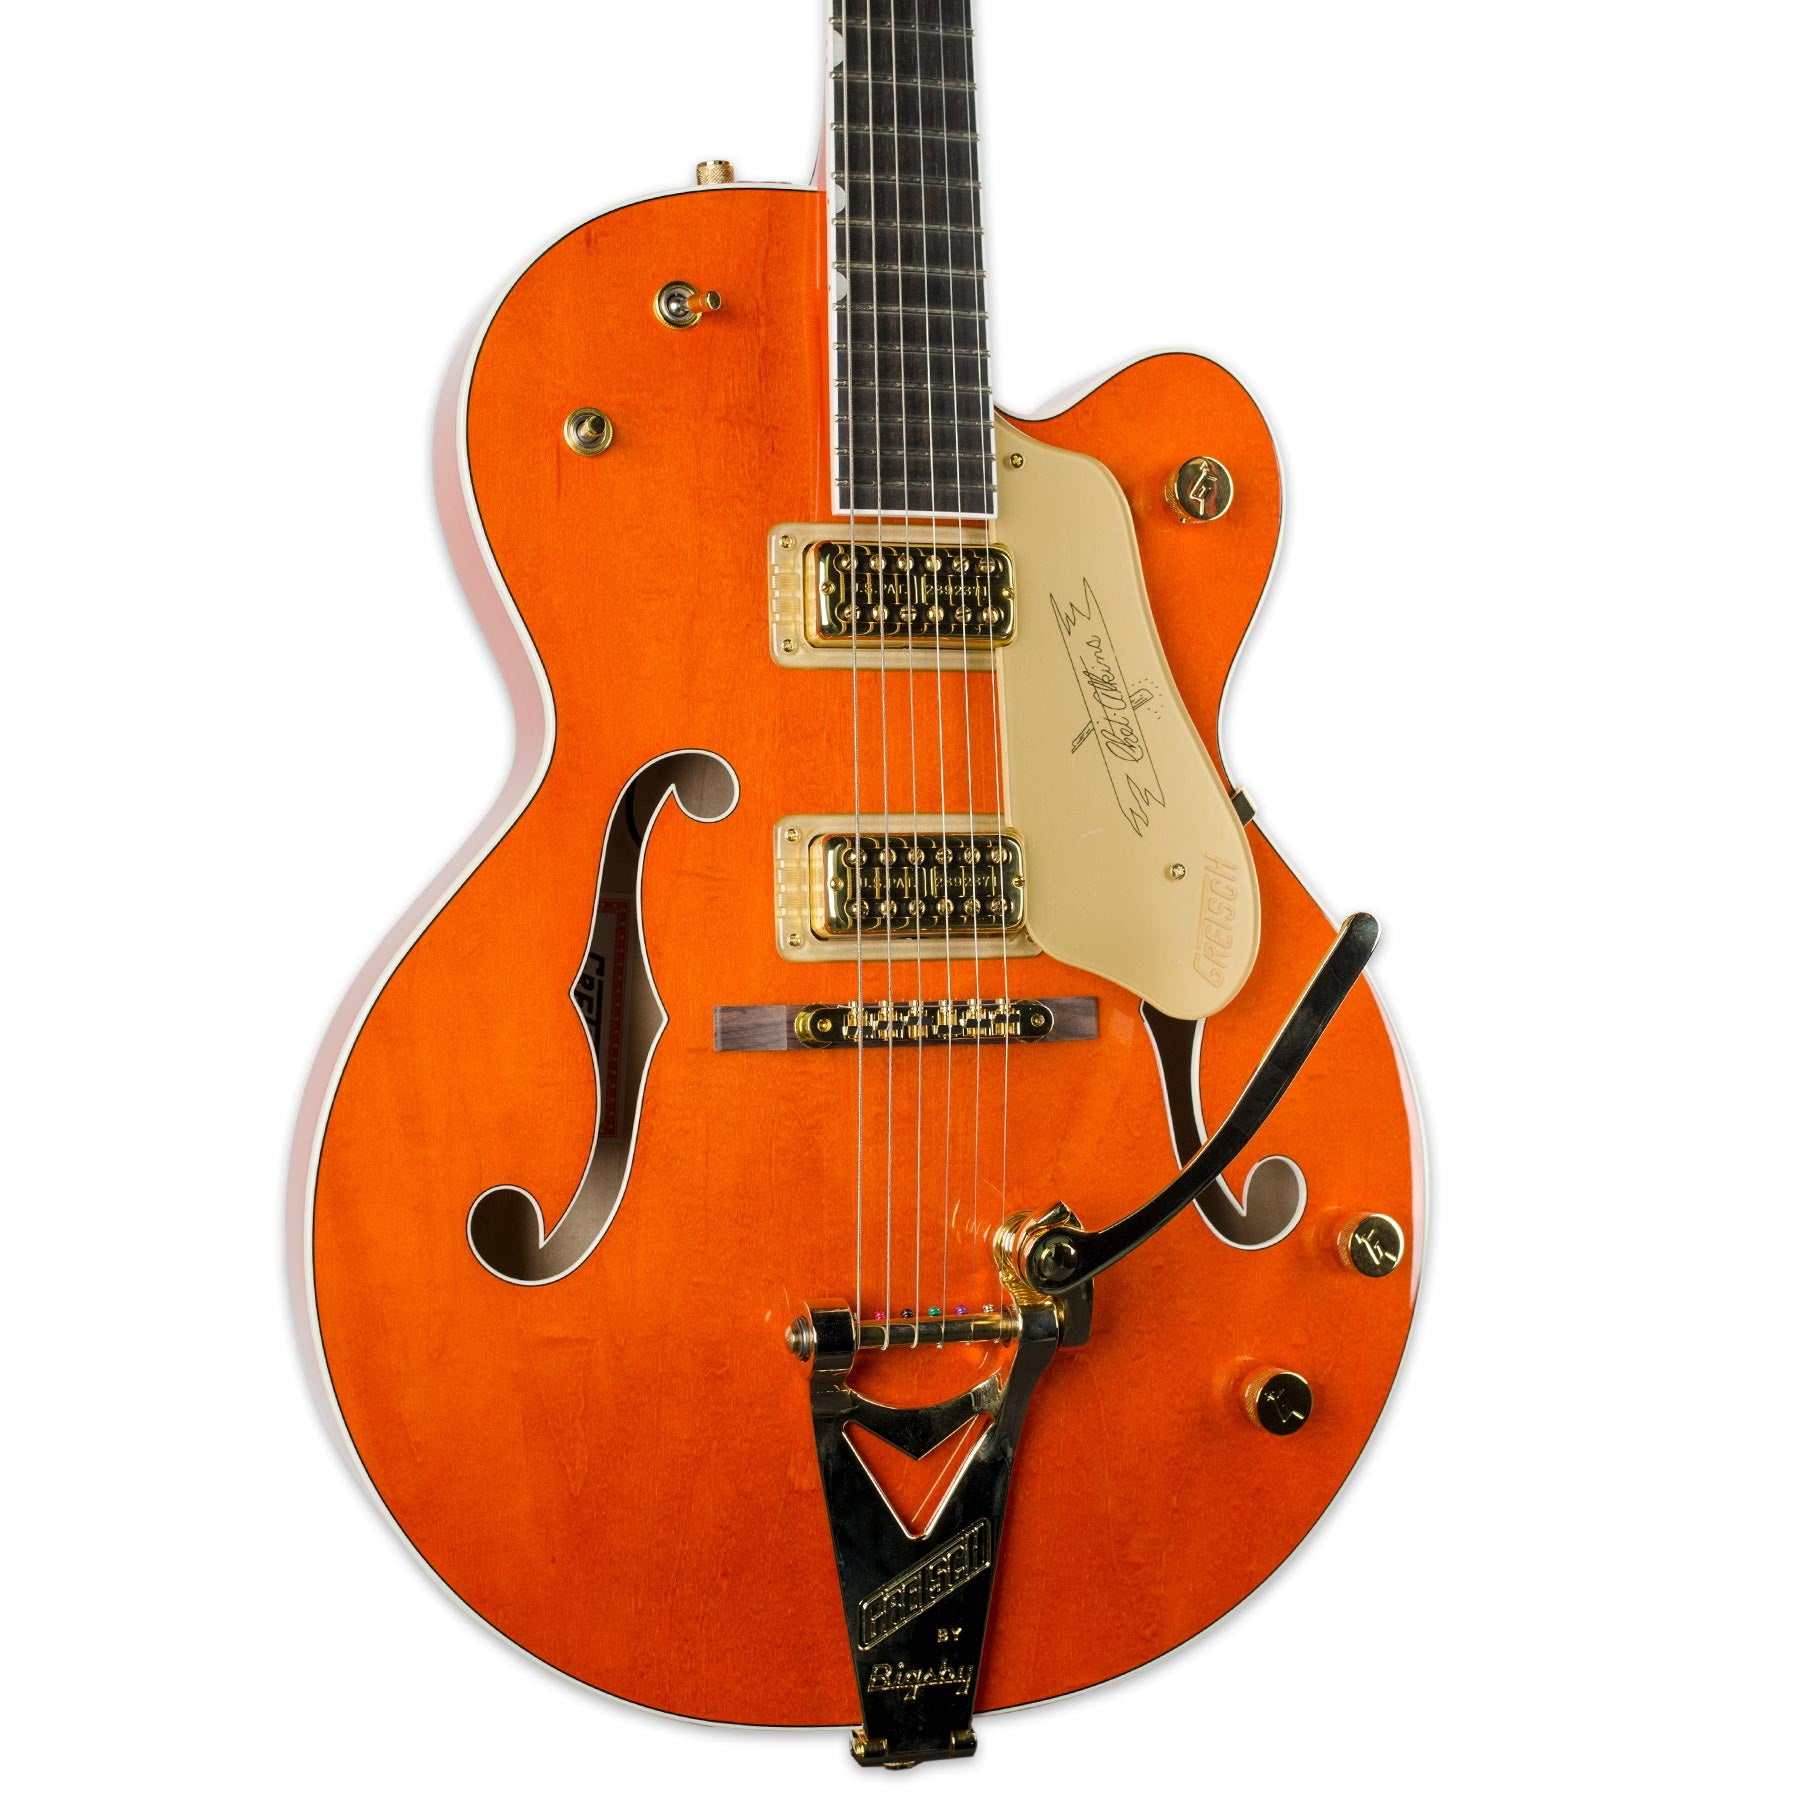 GRETSCH G6120 CHET ATKINS HOLLOWBODY